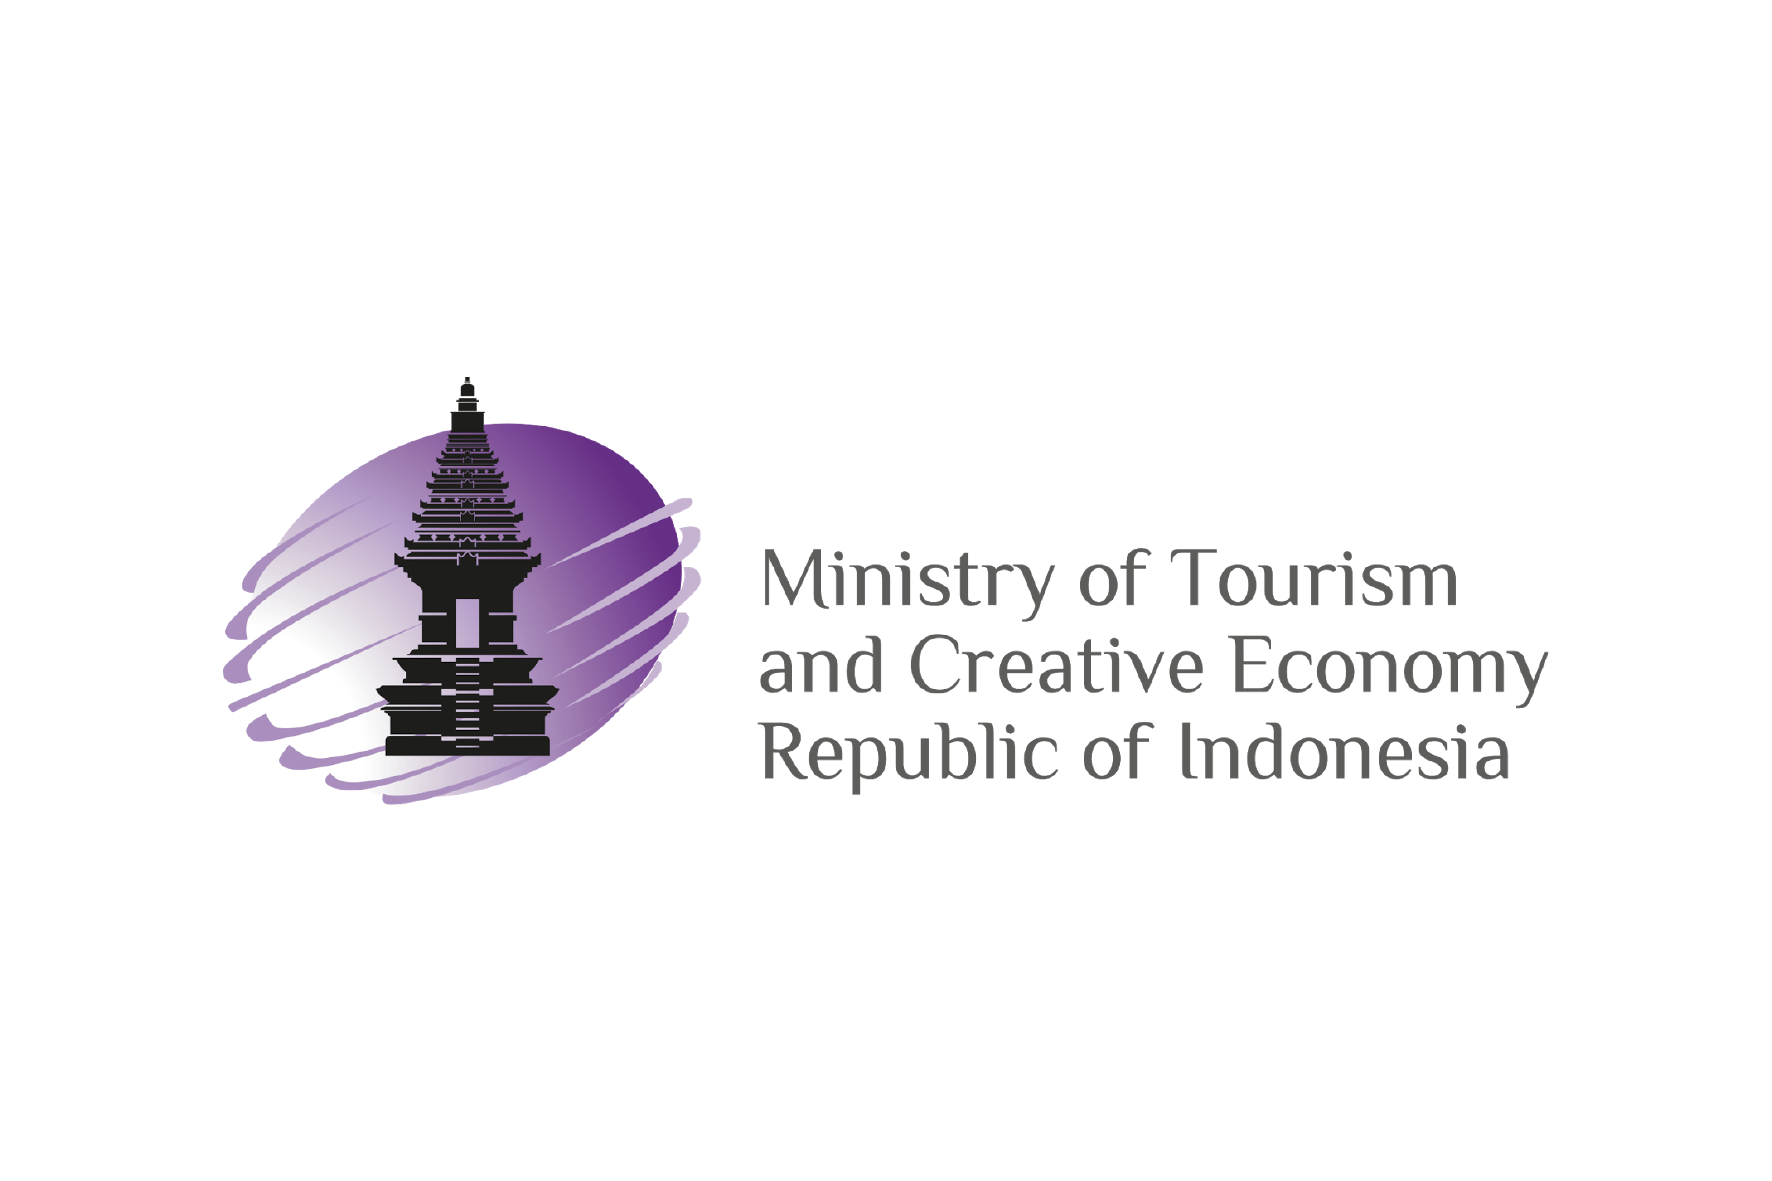 Ministry Of Tourism and Creative Economy Republic Of Indonesia